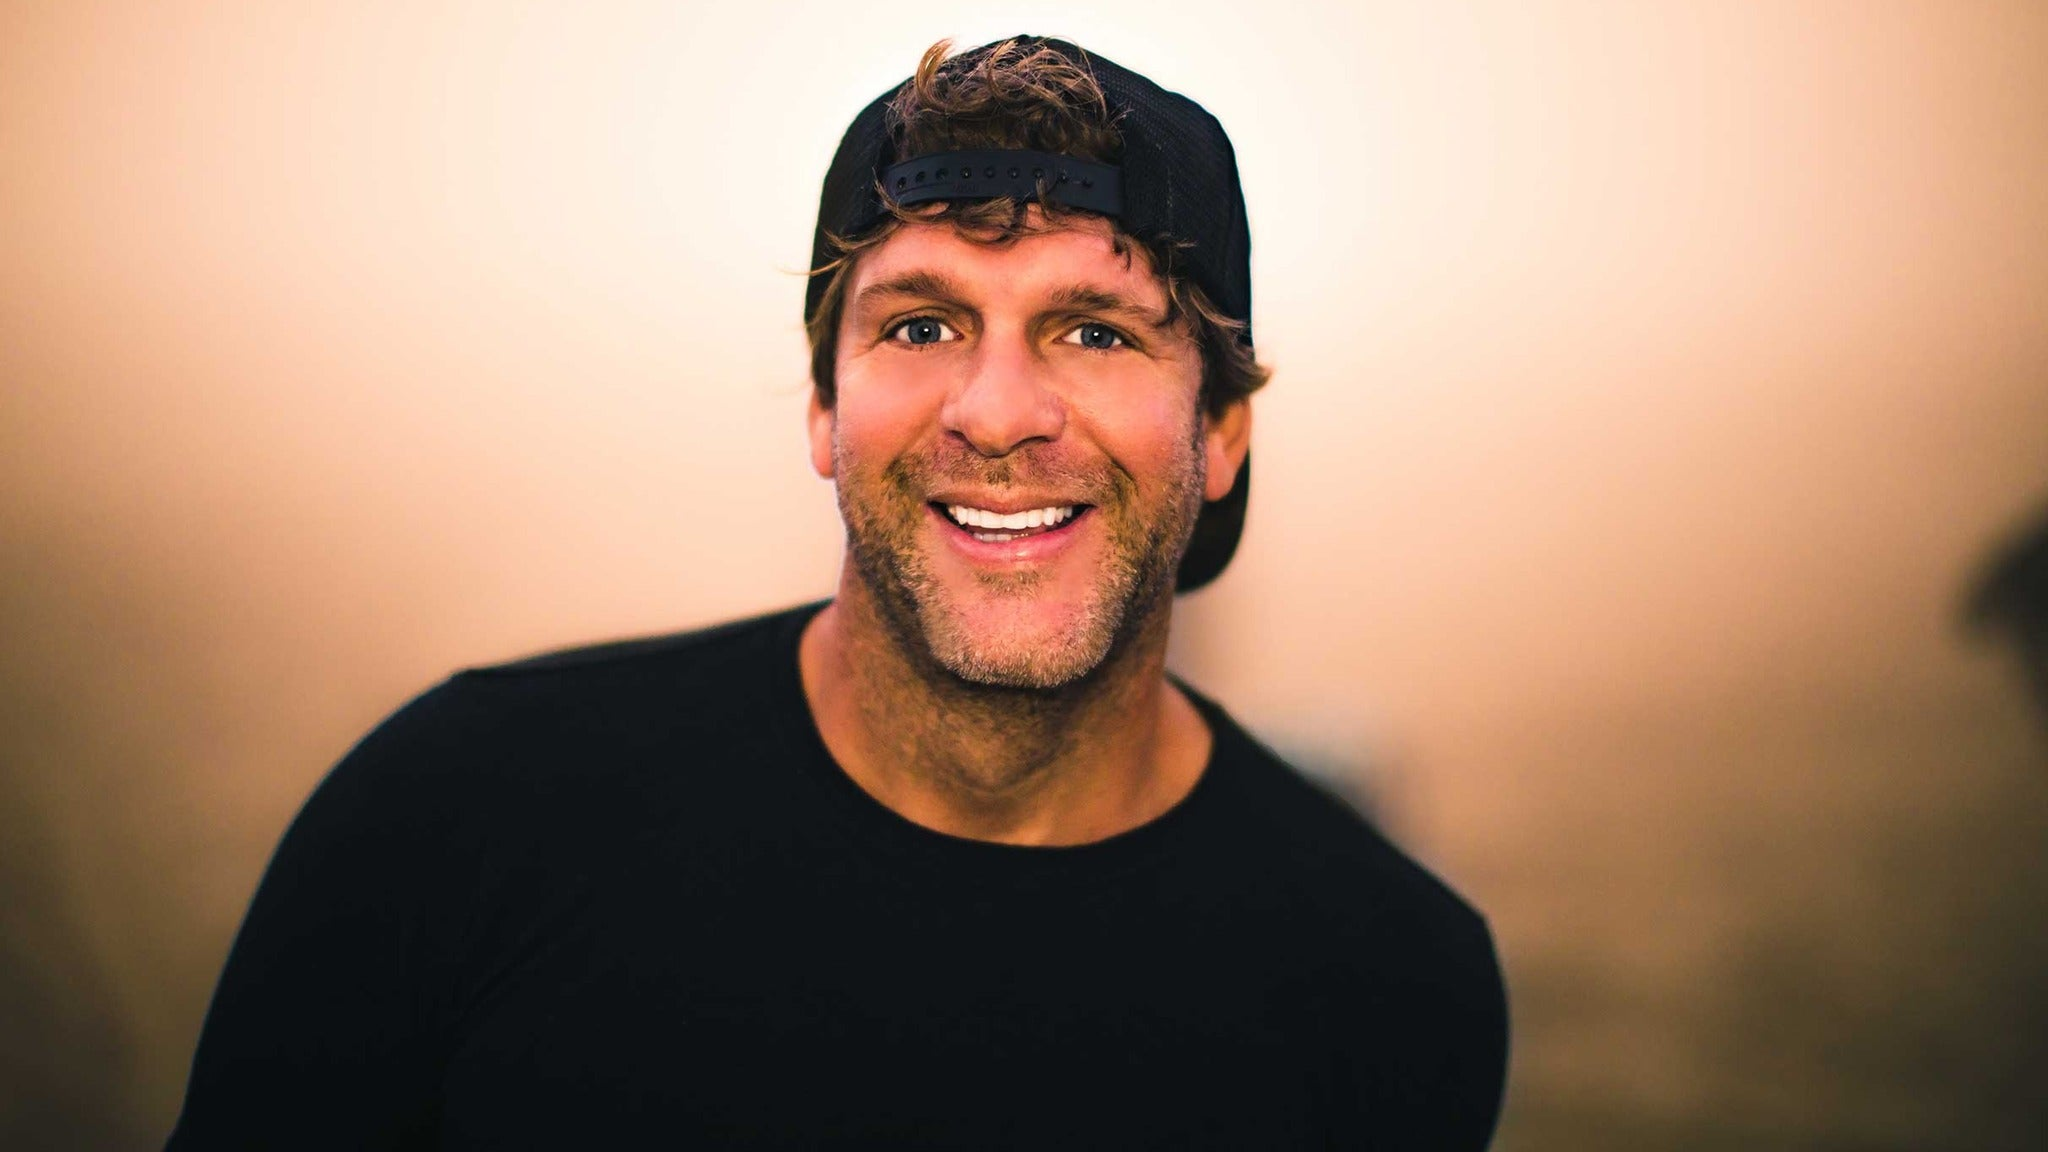 Billy Currington at San Jose Civic